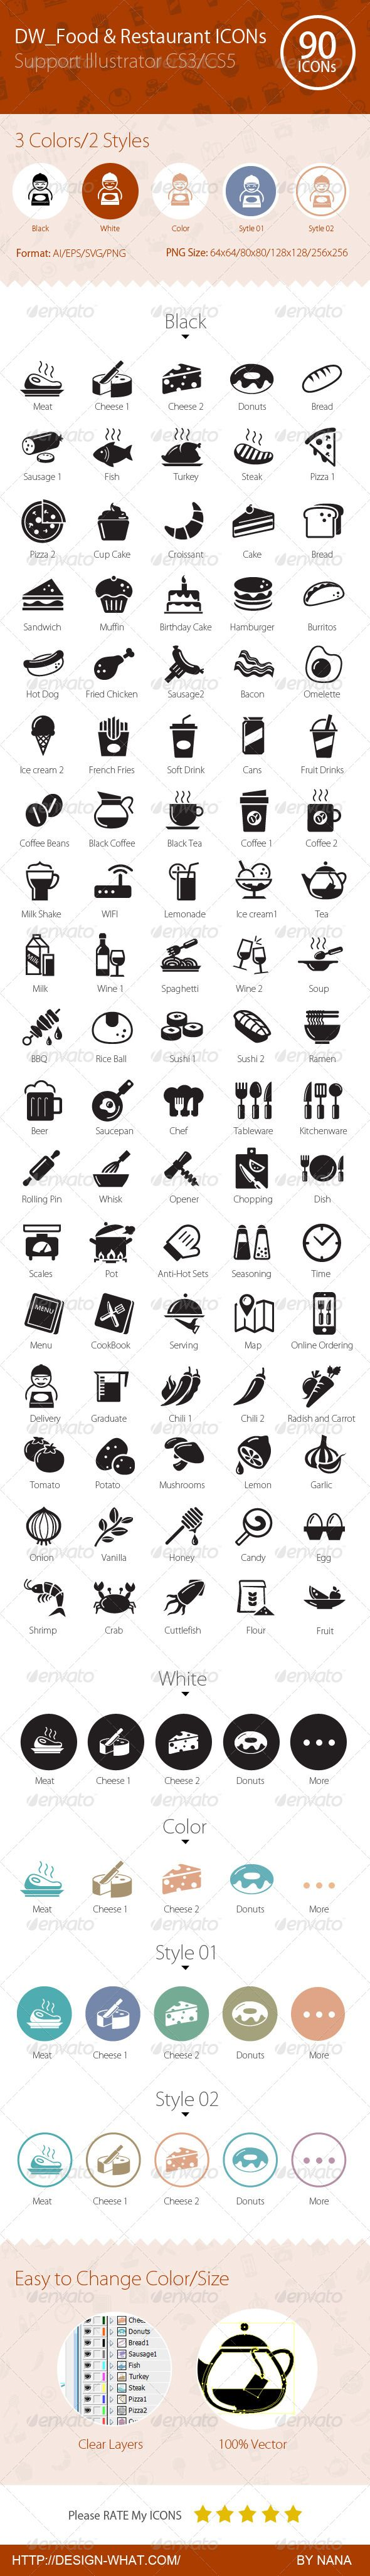 90 Food & Restaurant ICONs (Web)